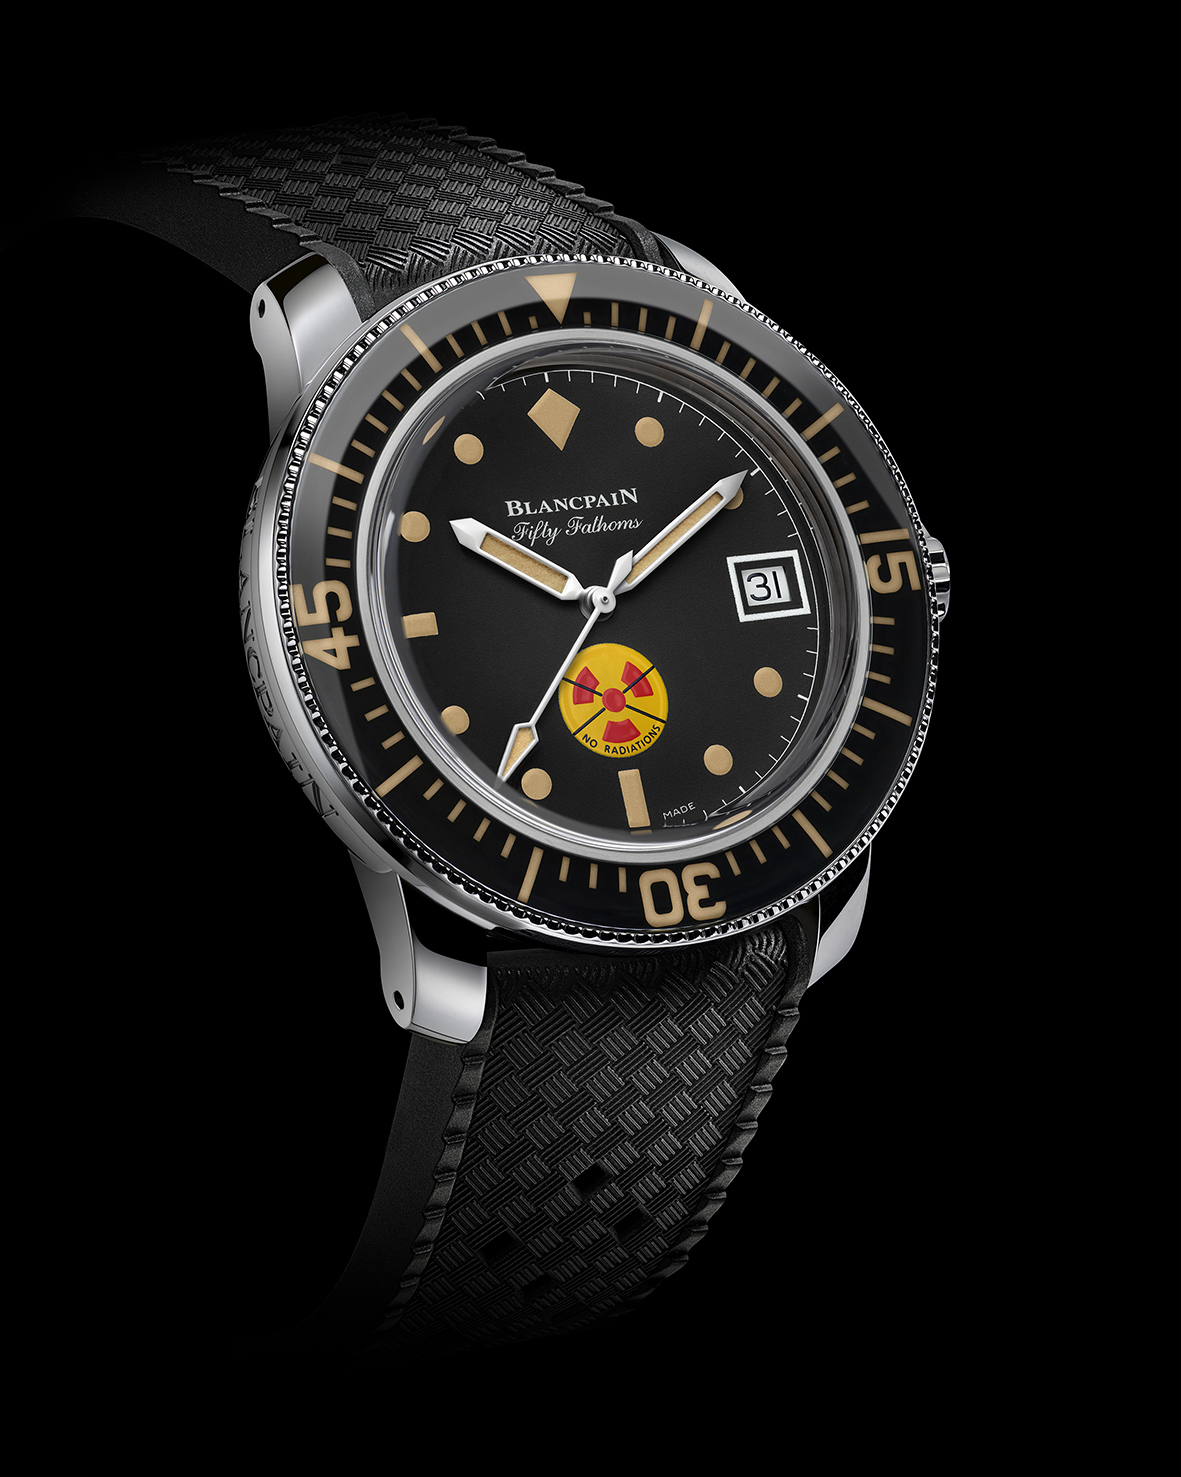 Blancpain Tribute to Fifty Fathoms No Radiations